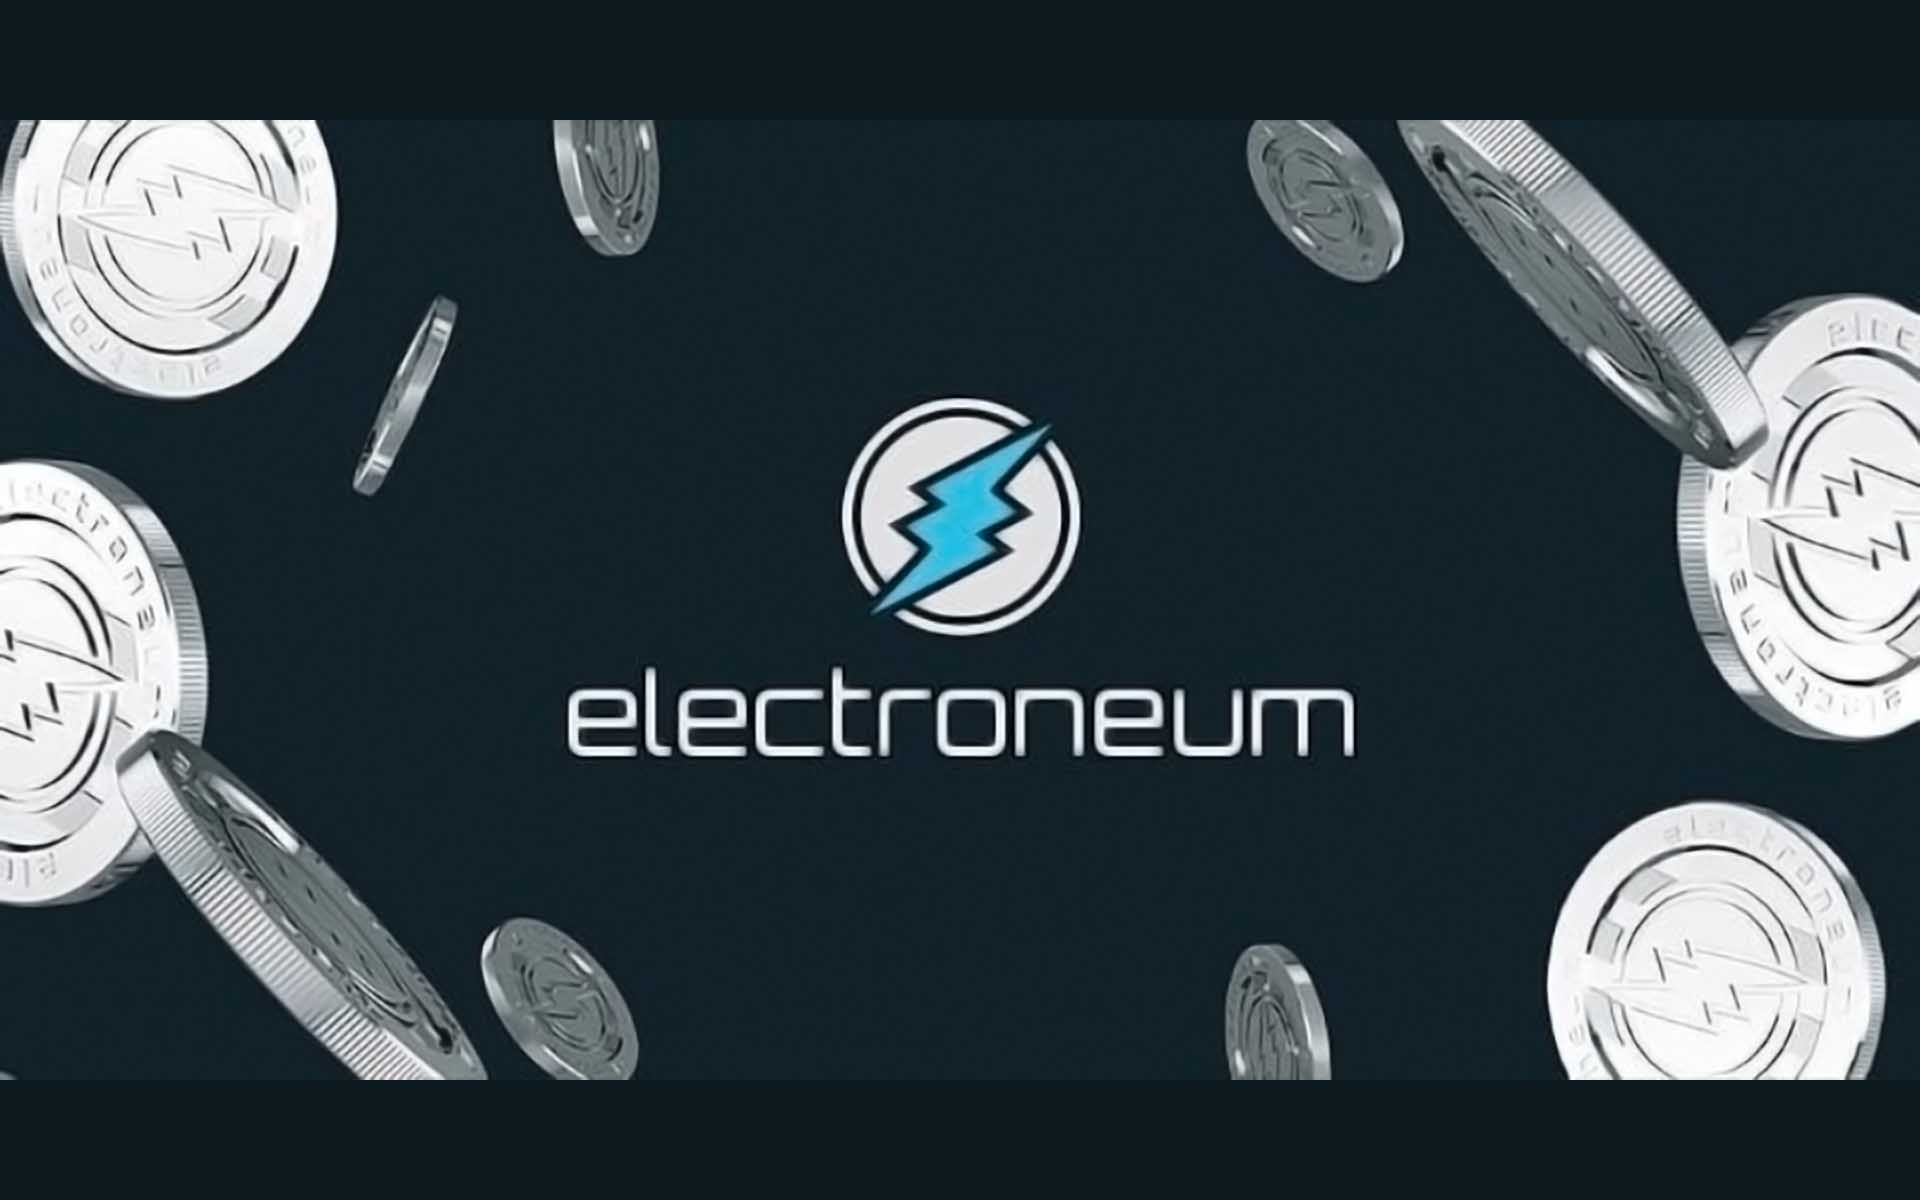 Electroneum gets compared to bitcoin